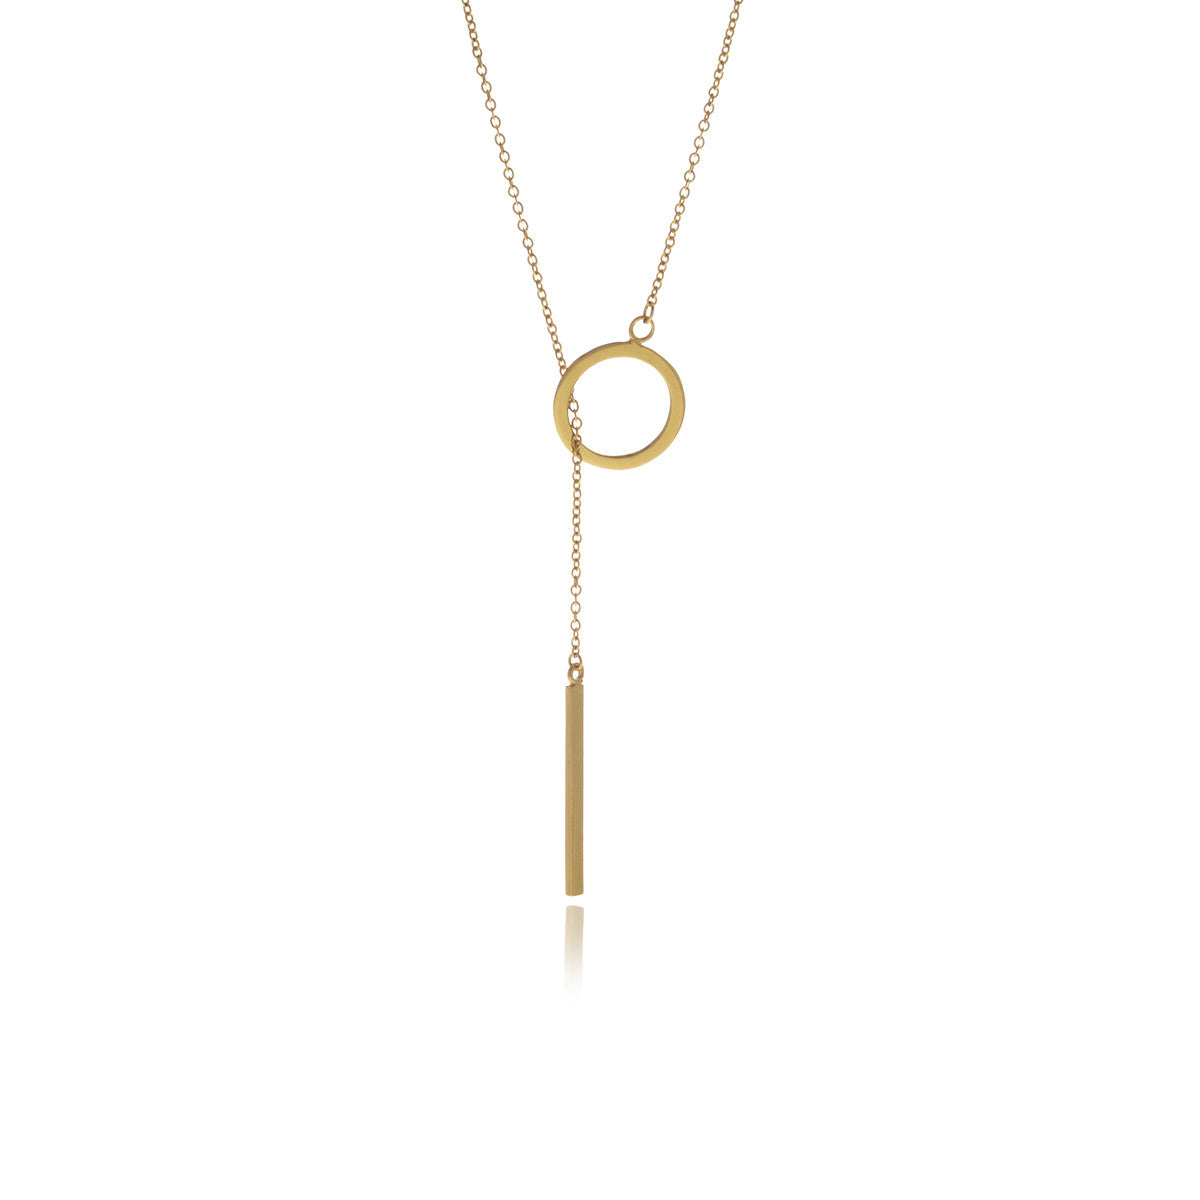 Reverie Gold Bar Chain Long Necklace - MCK Brands